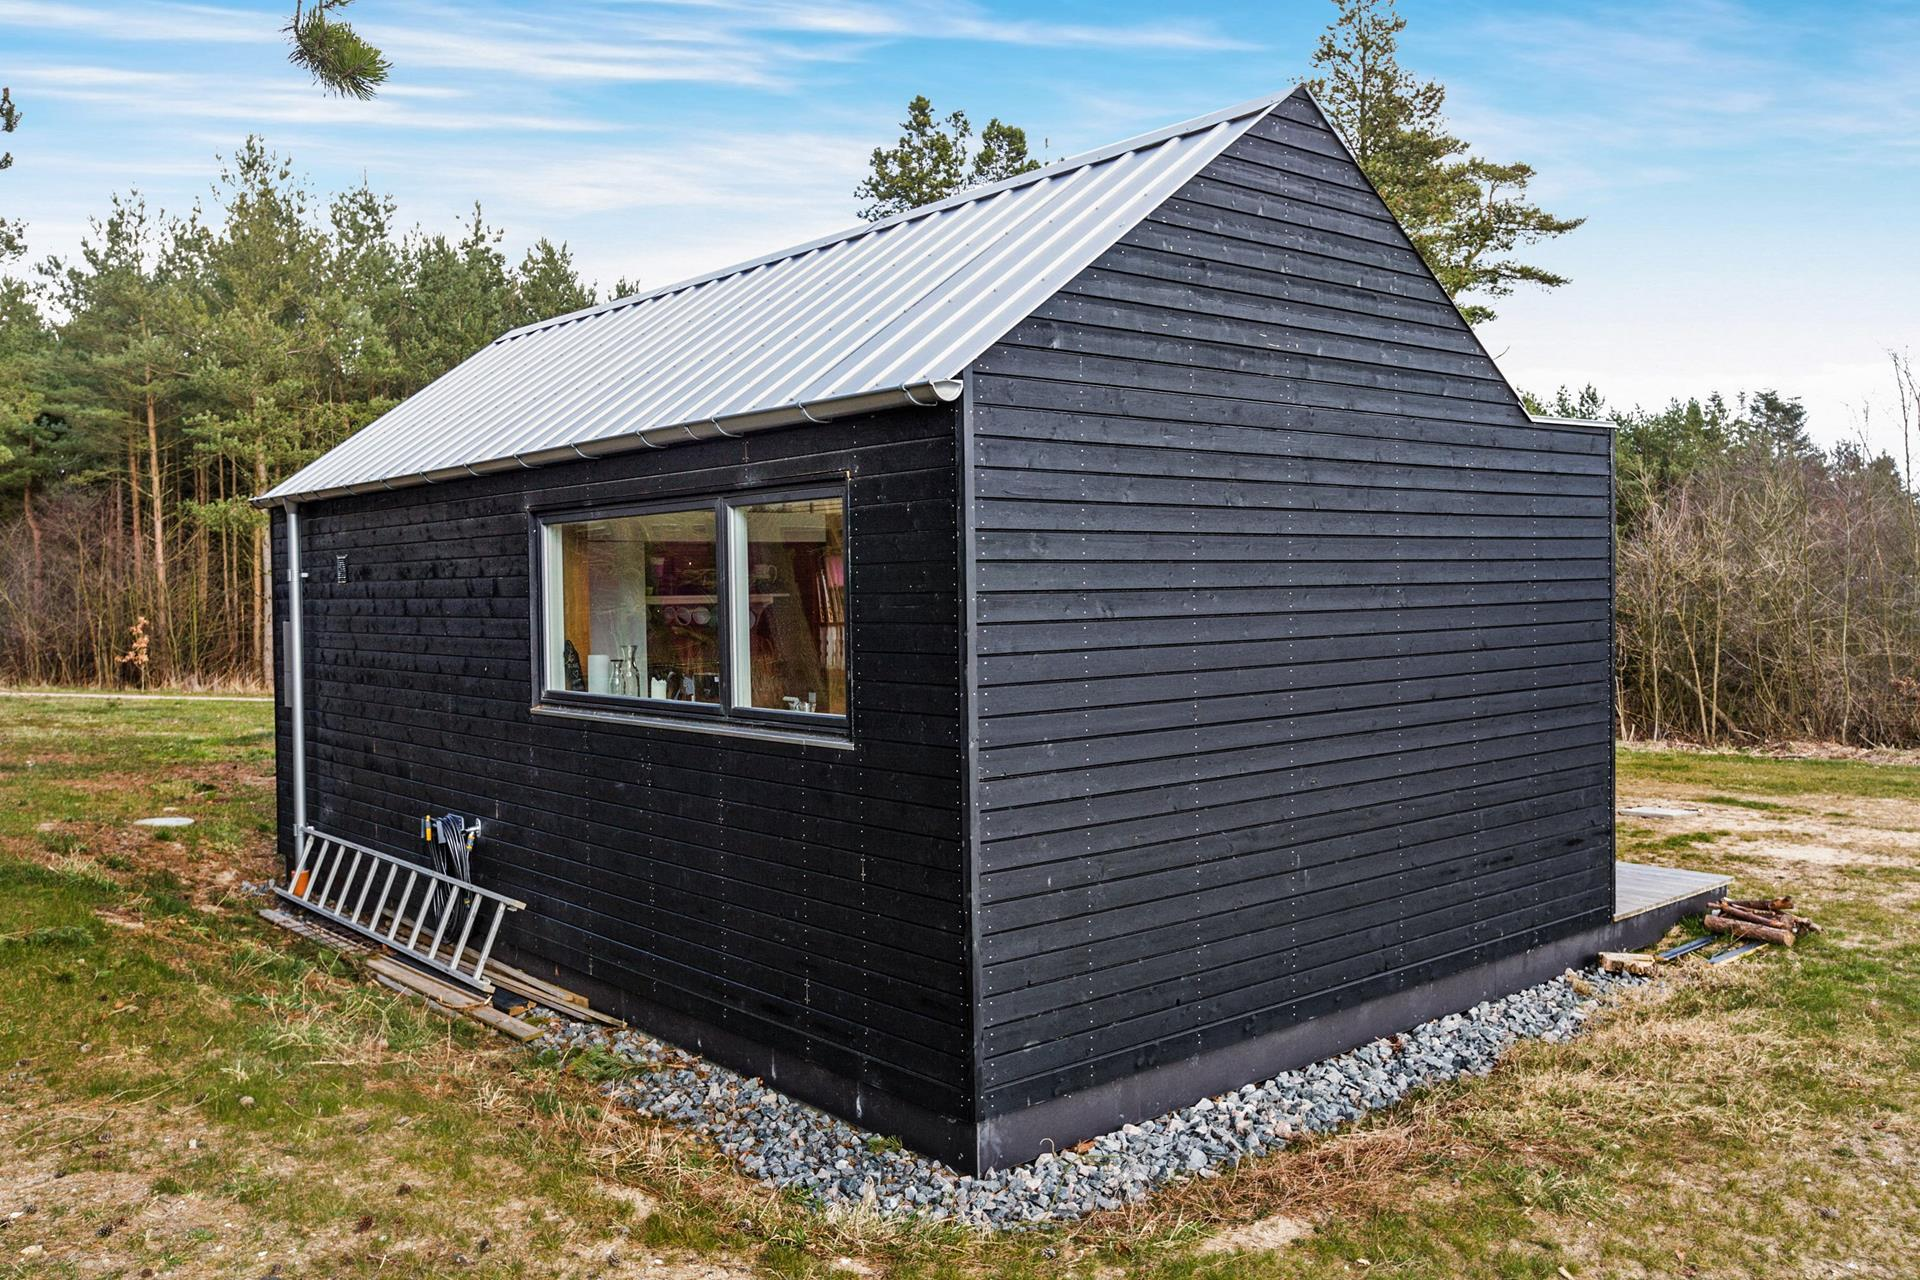 Gallery scandinavian modern tiny house simon steffensen for The new small house